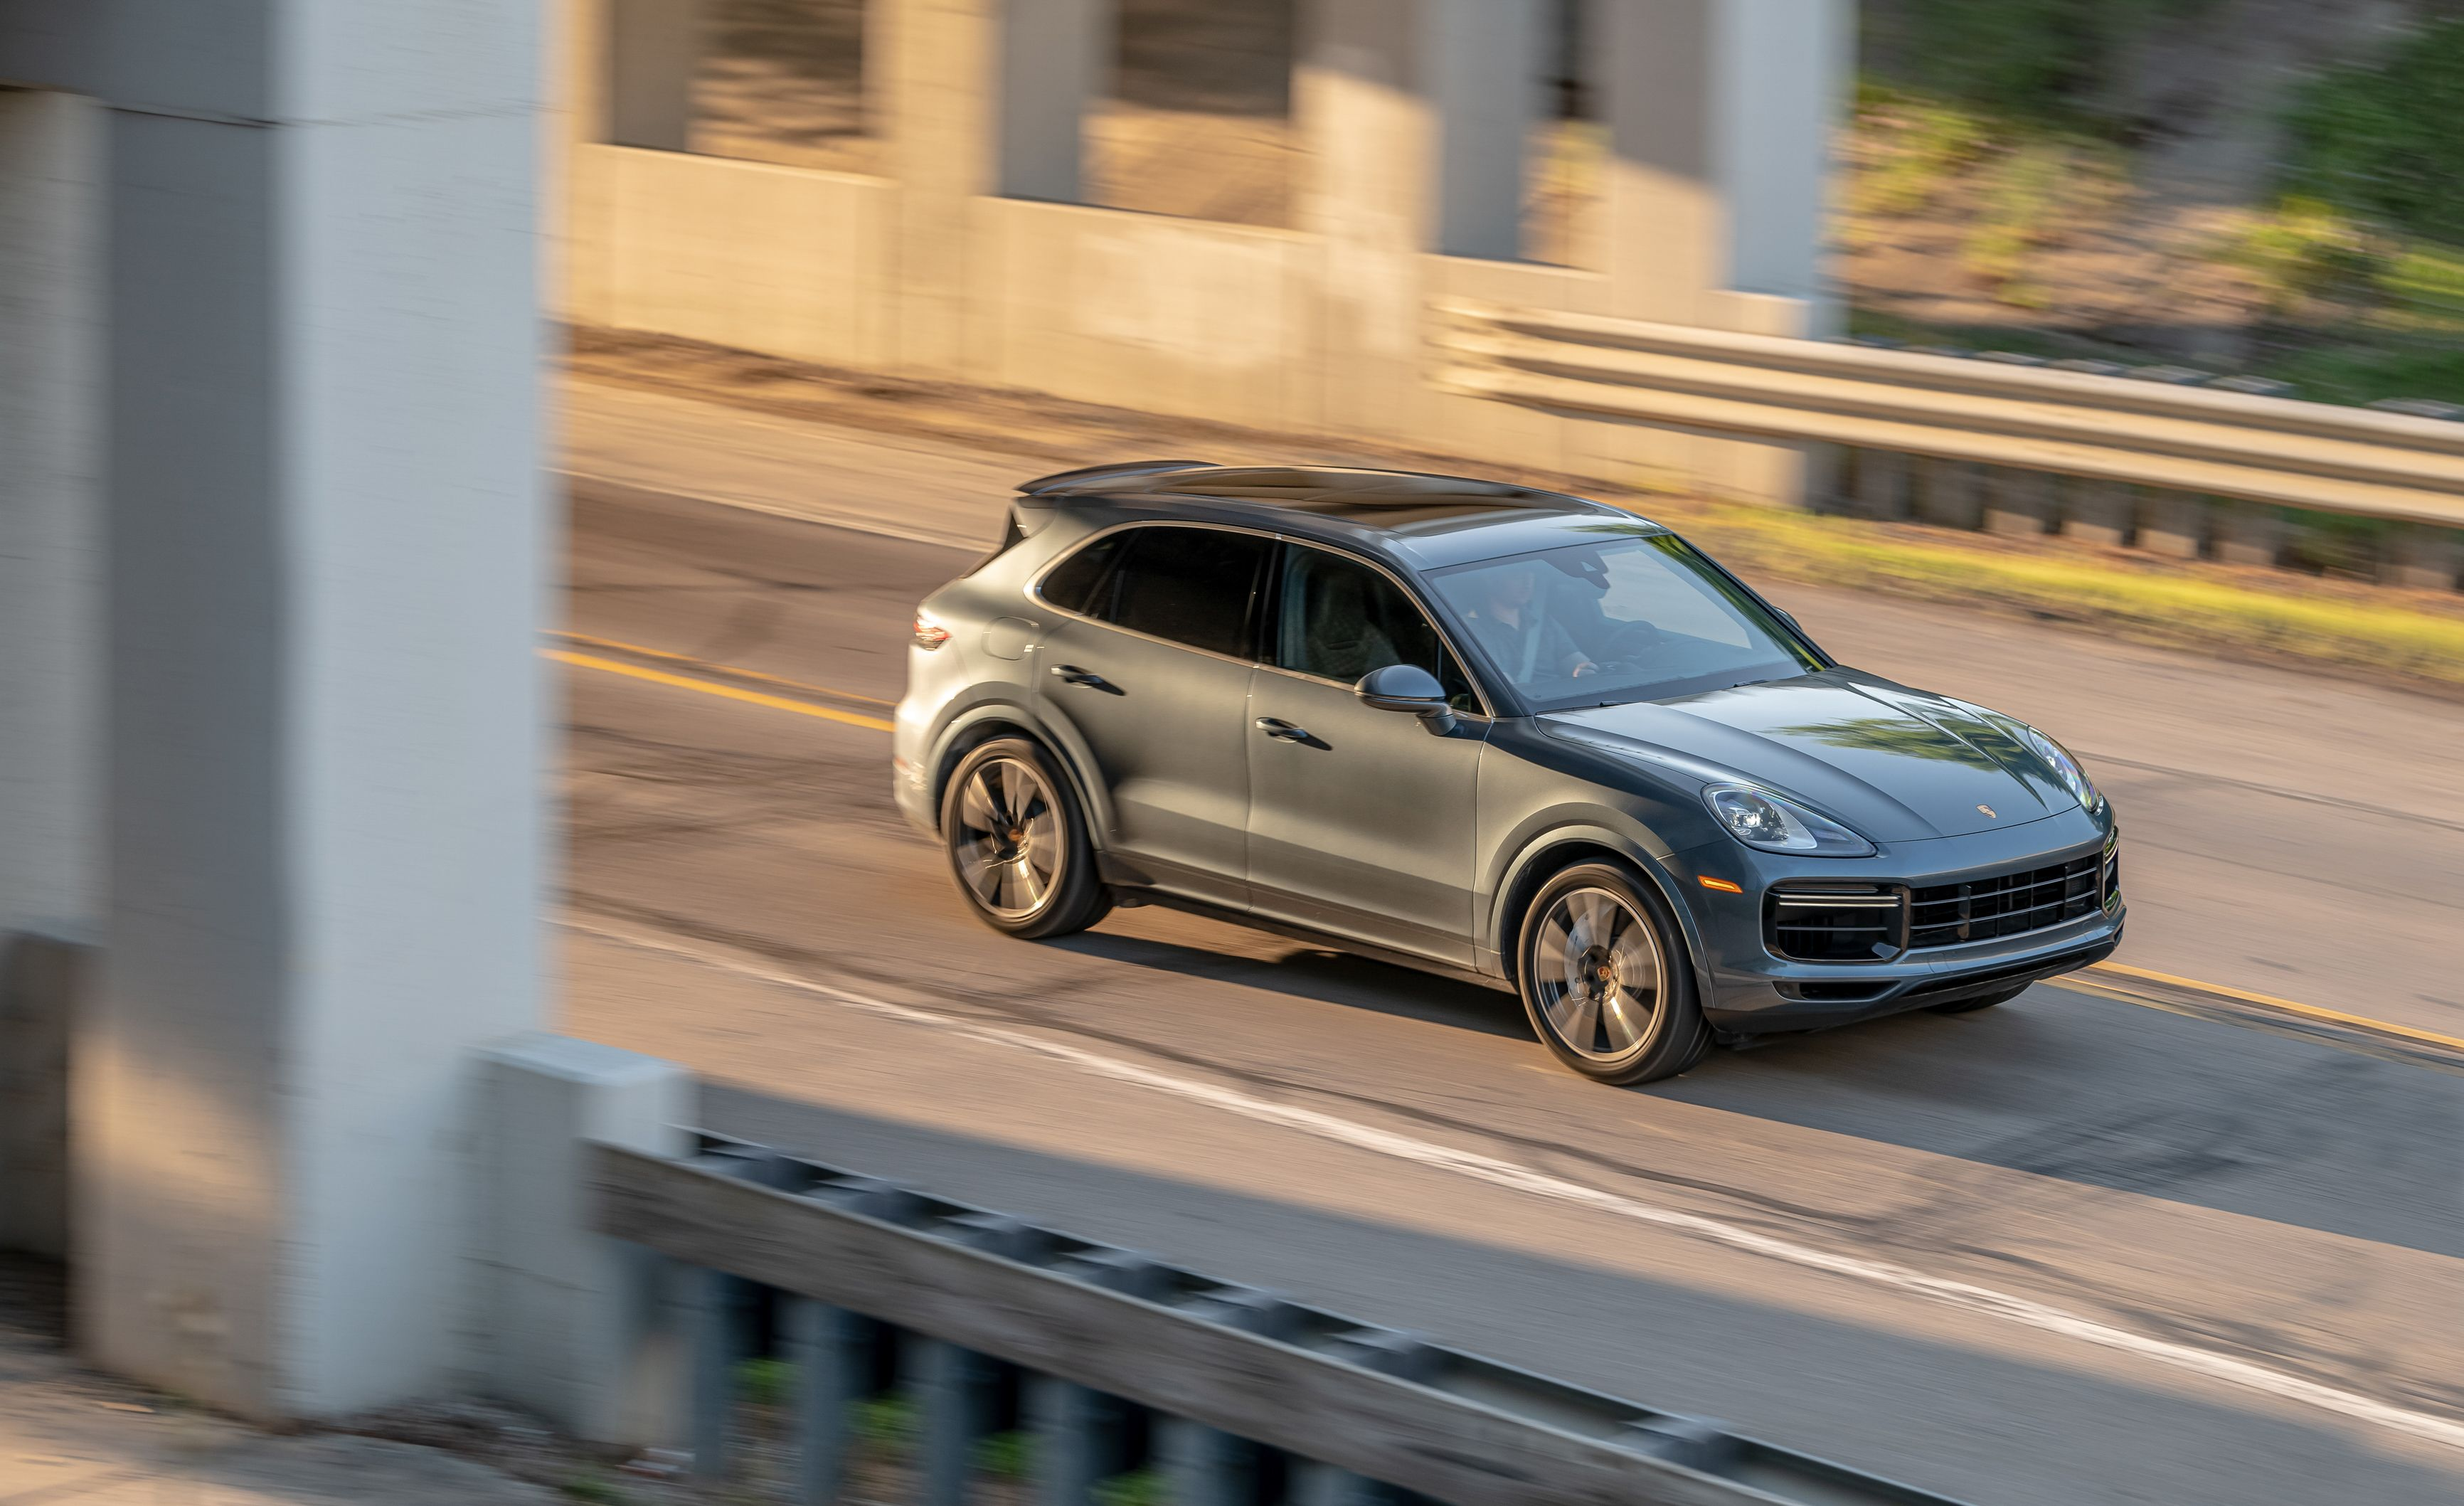 2019 Porsche Cayenne Turbo Is the Ultimate Porsche SUV, for Now